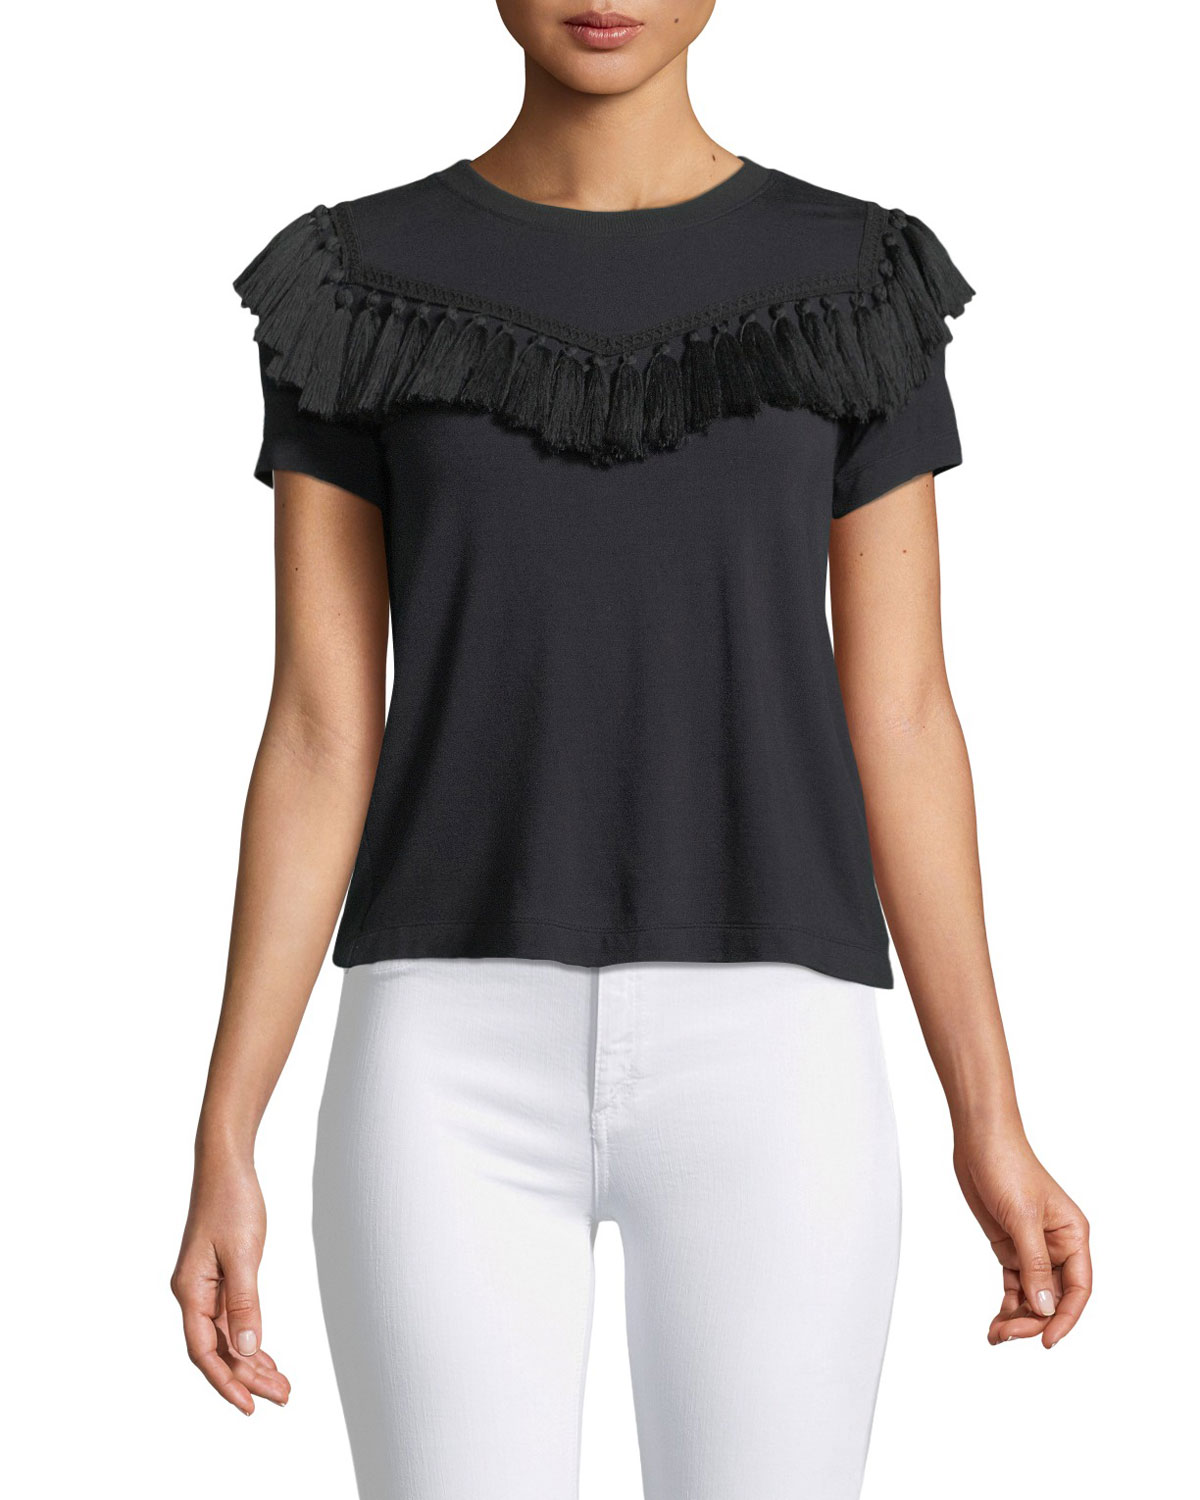 Karen Fringe-Yoke Short-Sleeve Top